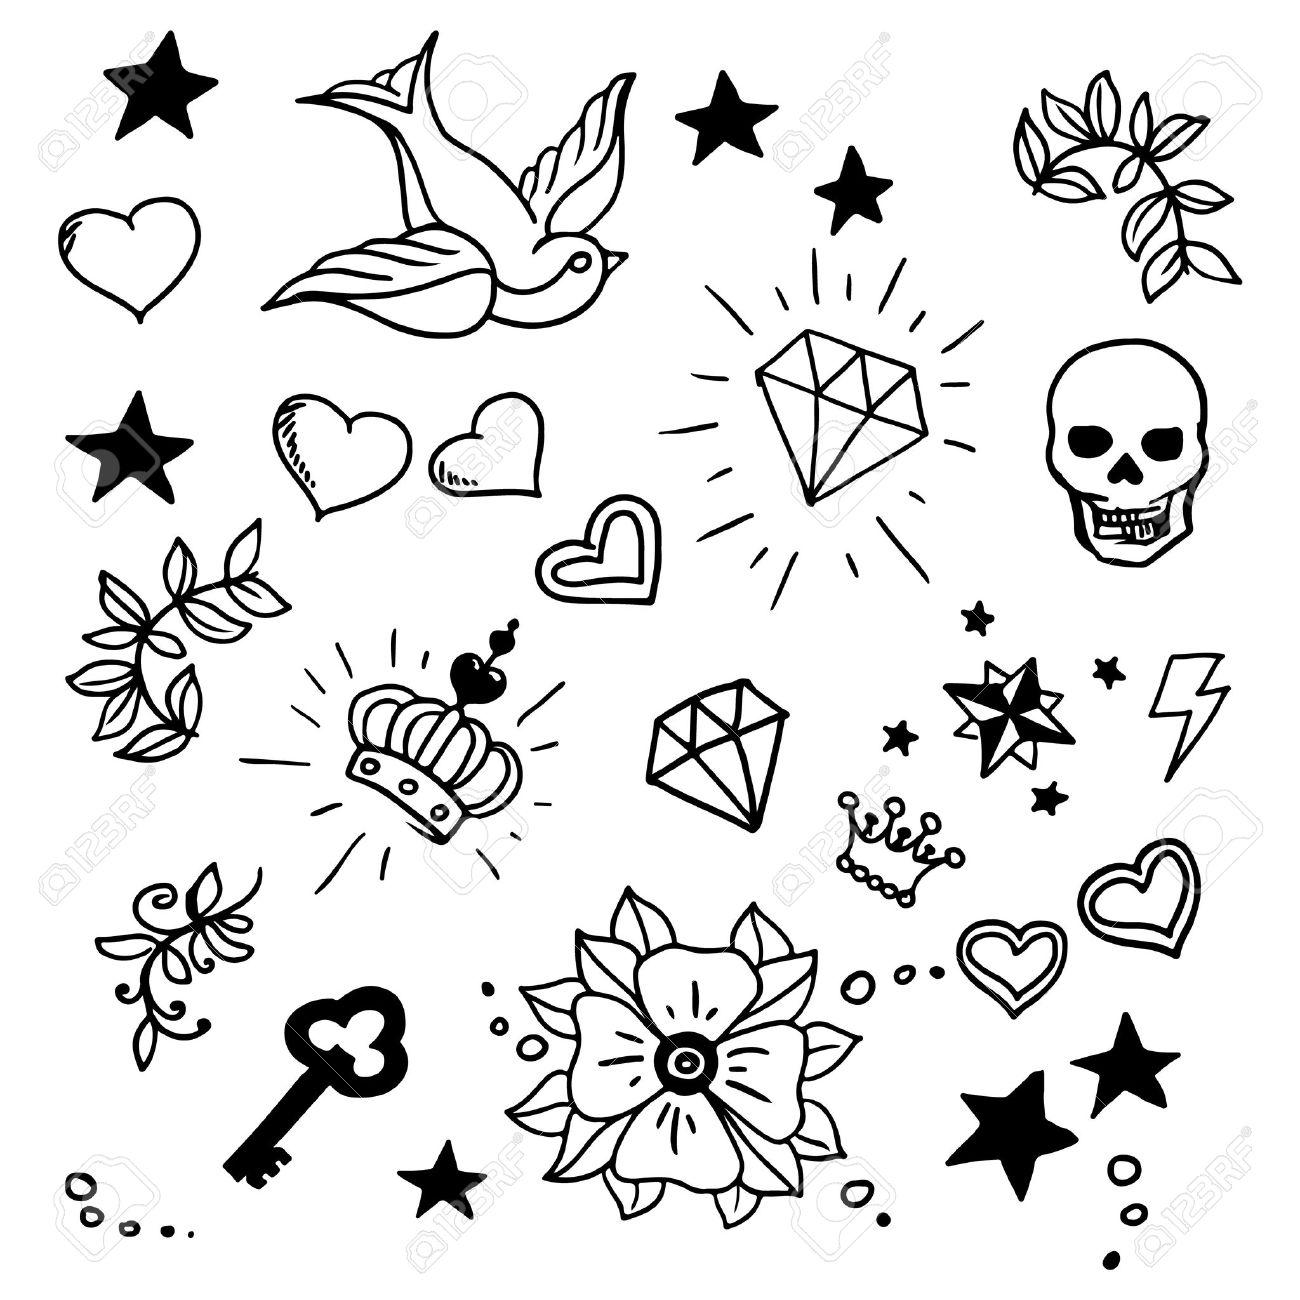 54e0125bf6968 Set Of Old School Tattos Elements, Vector Royalty Free Cliparts ...